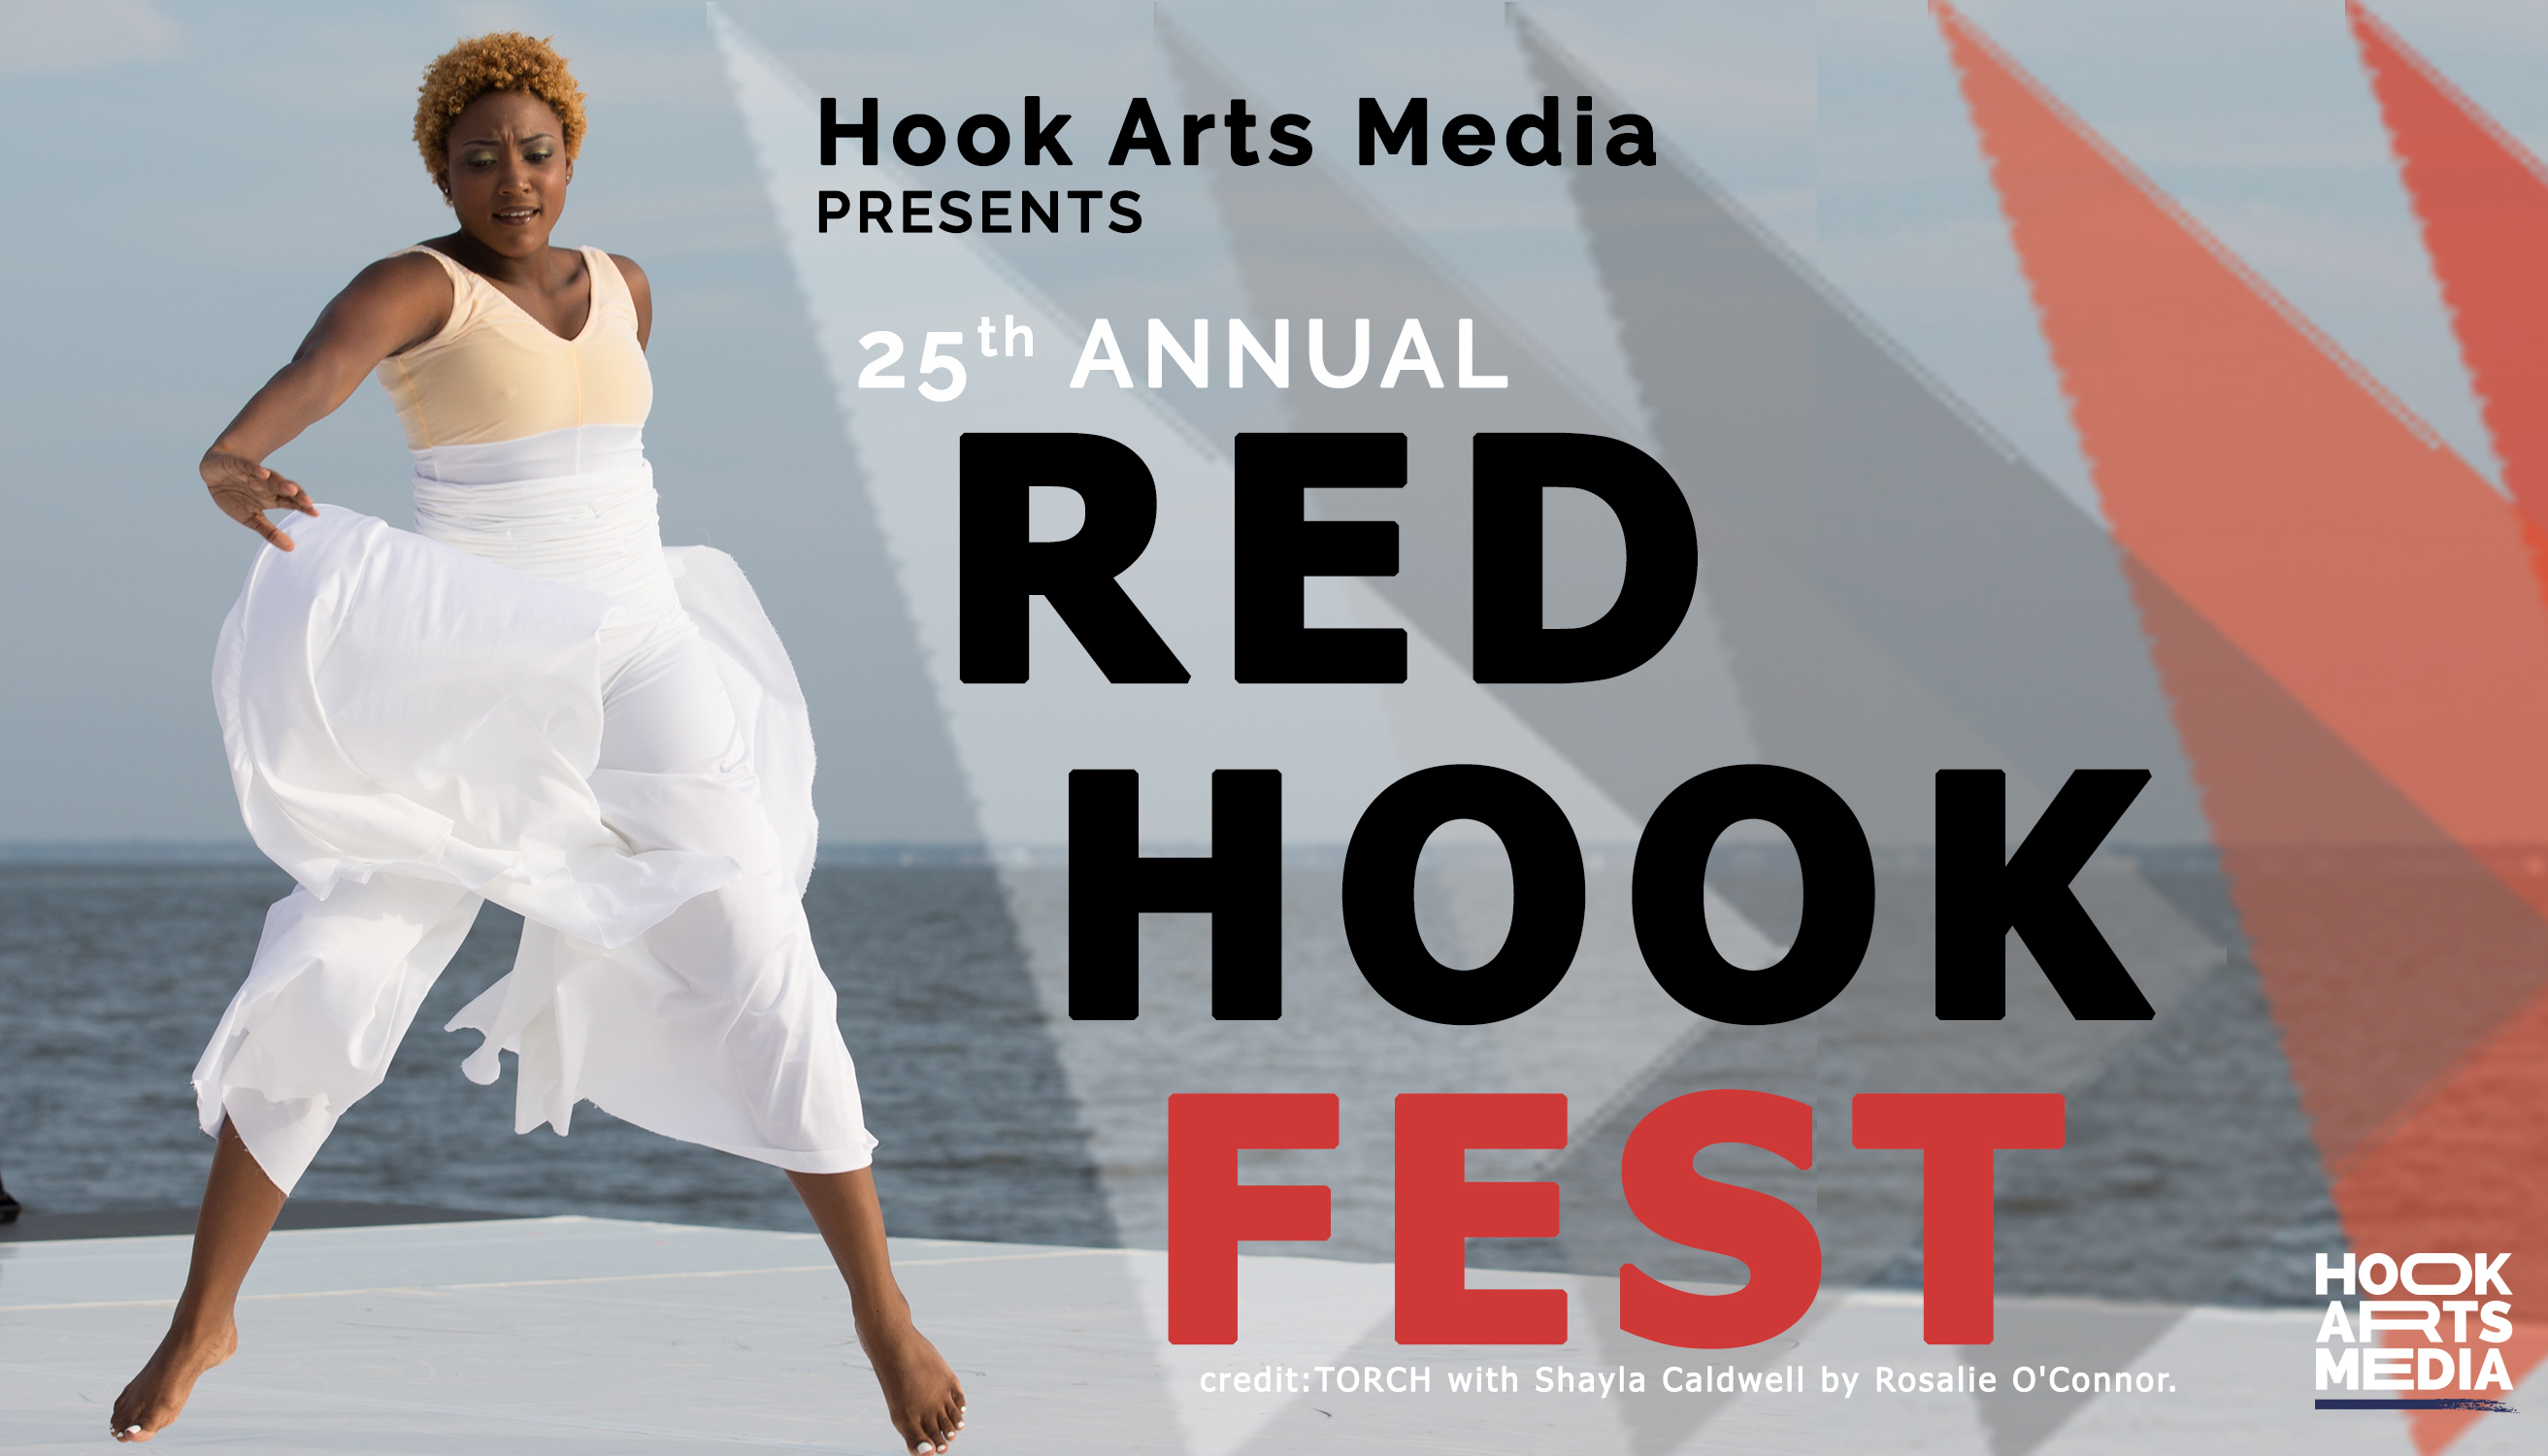 Hook Arts Media presents the 25th Annual Red Hook Fest